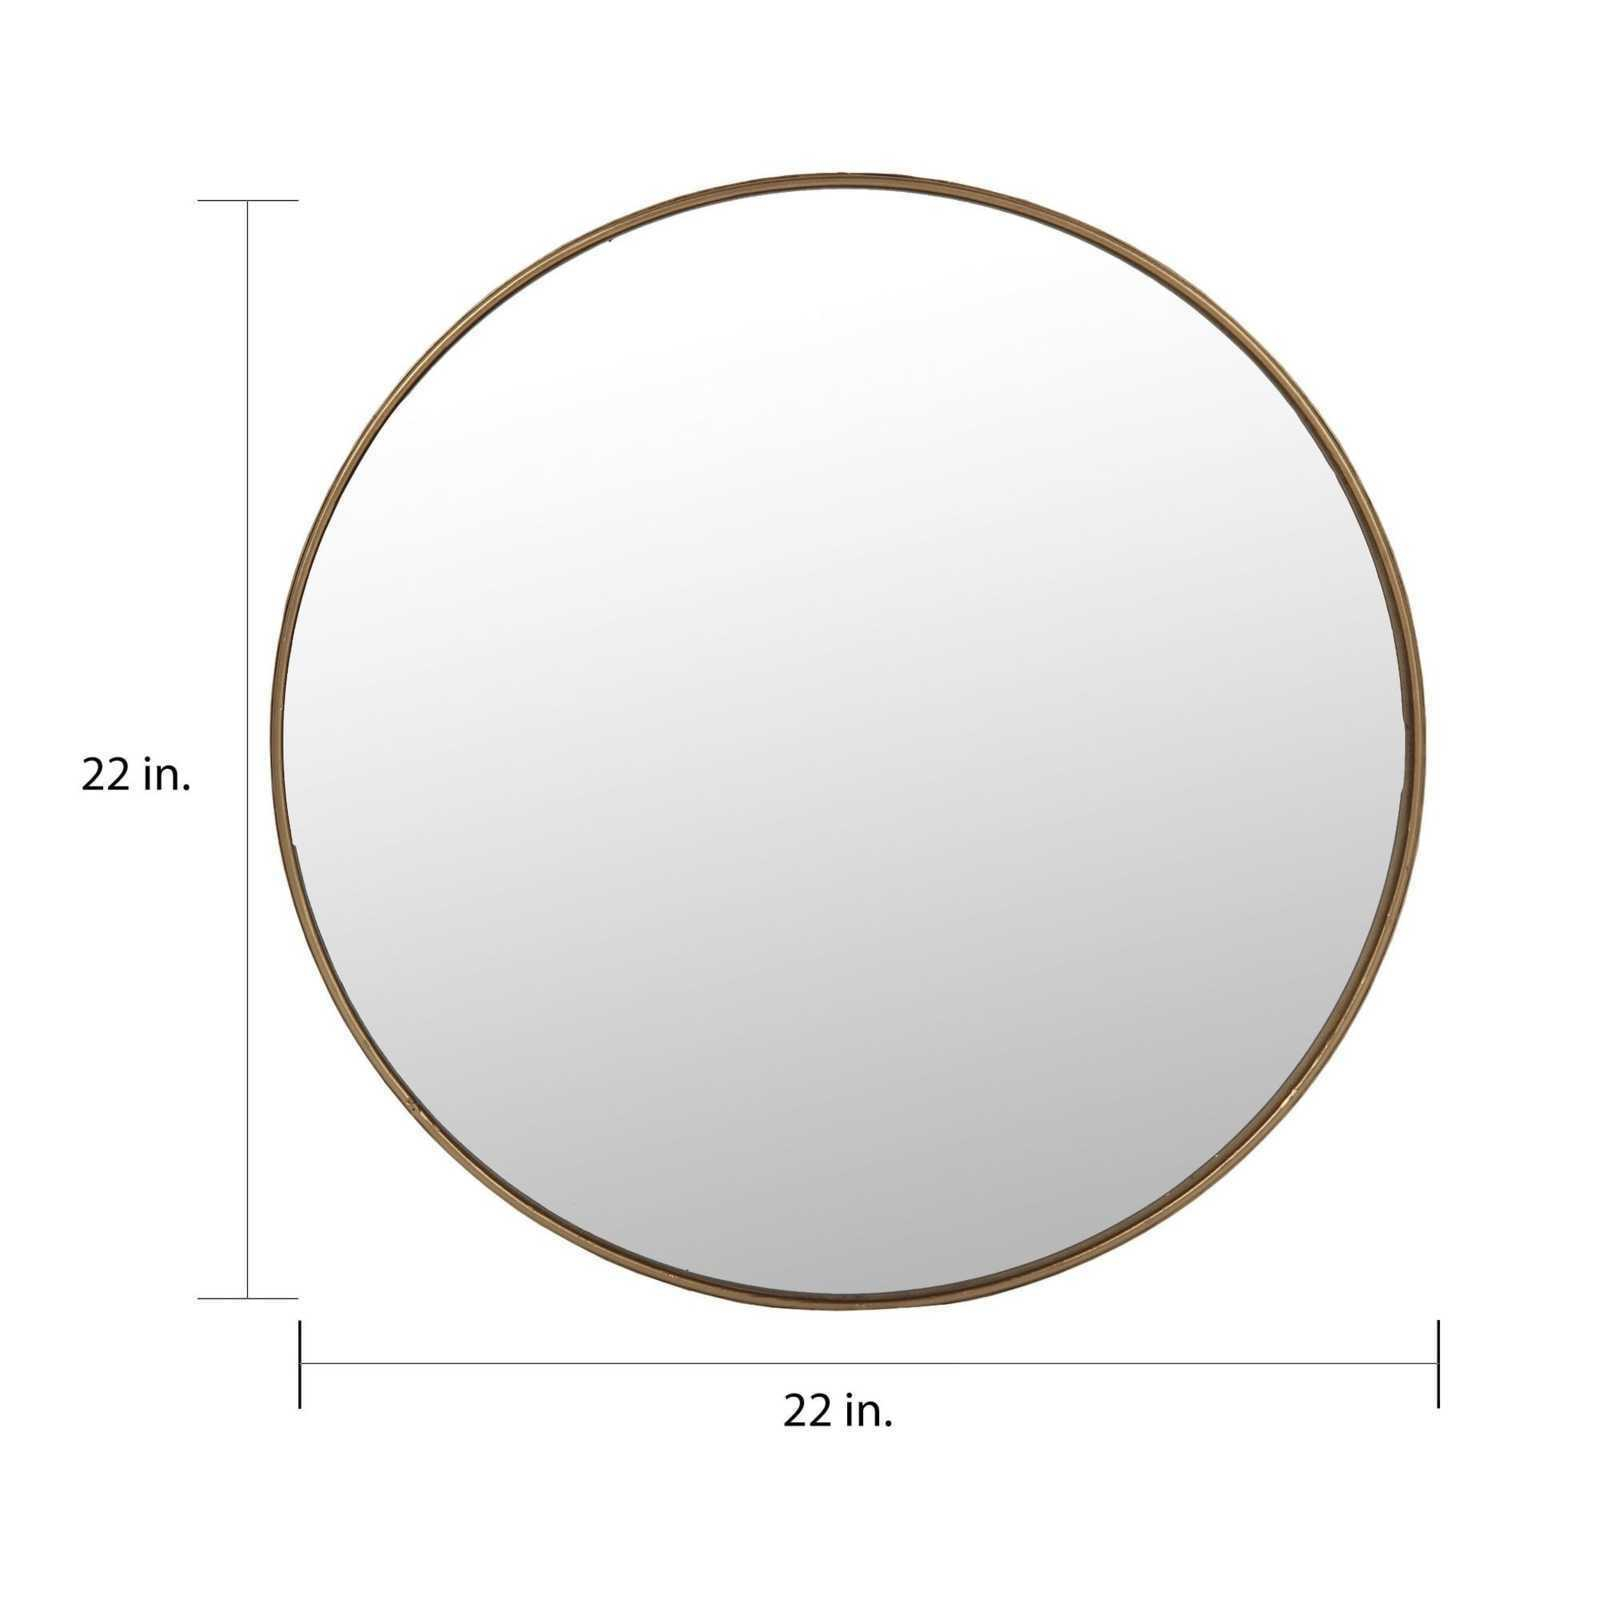 Large Round Wall Mirror Gold Frame Wall Mounted Vertical Orientation 15''  32'' H Throughout Vertical Round Wall Mirrors (Image 12 of 20)